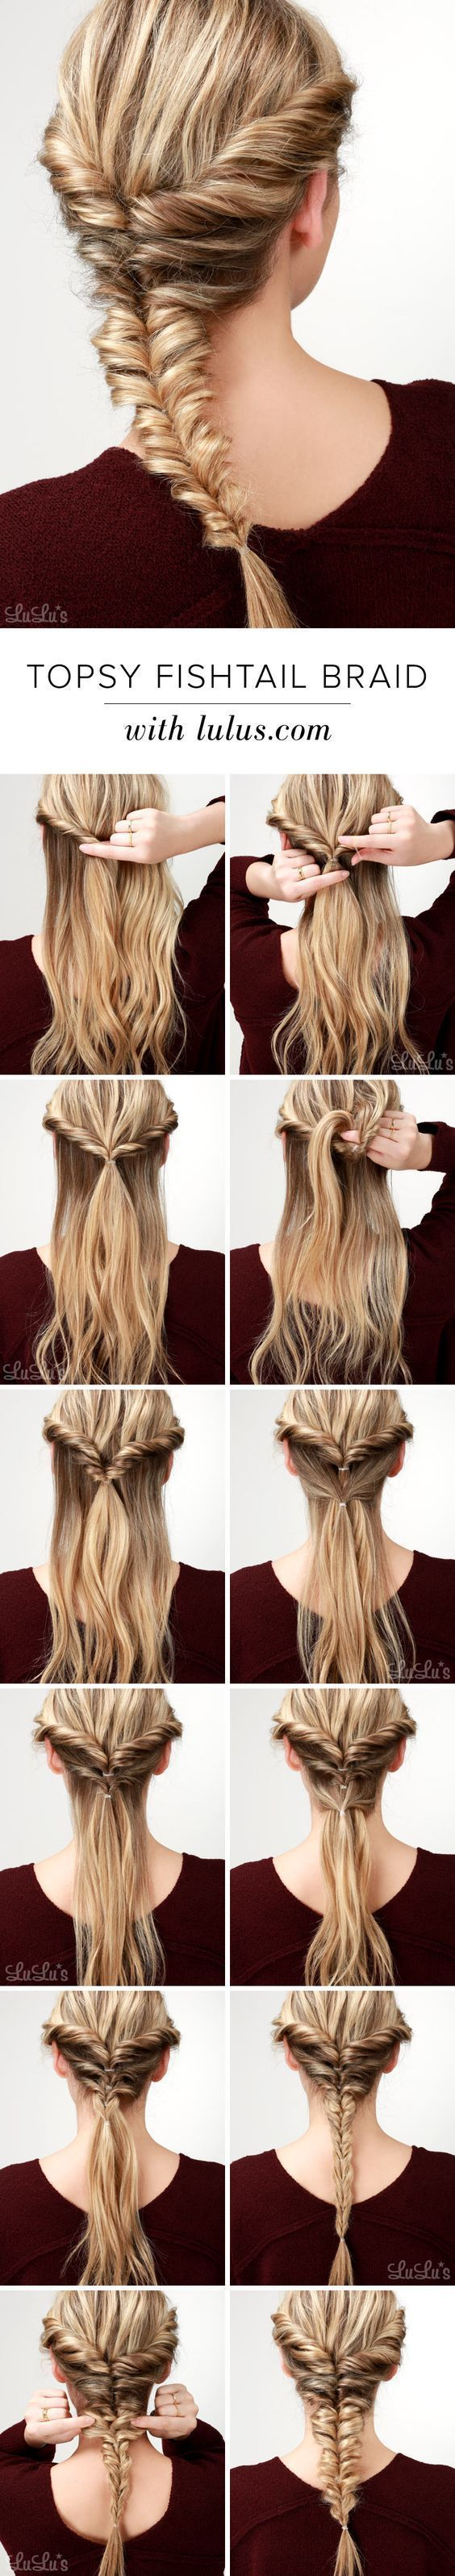 100 Super Easy DIY Braided Hairstyles for Wedding Tutorials #hairtutorials